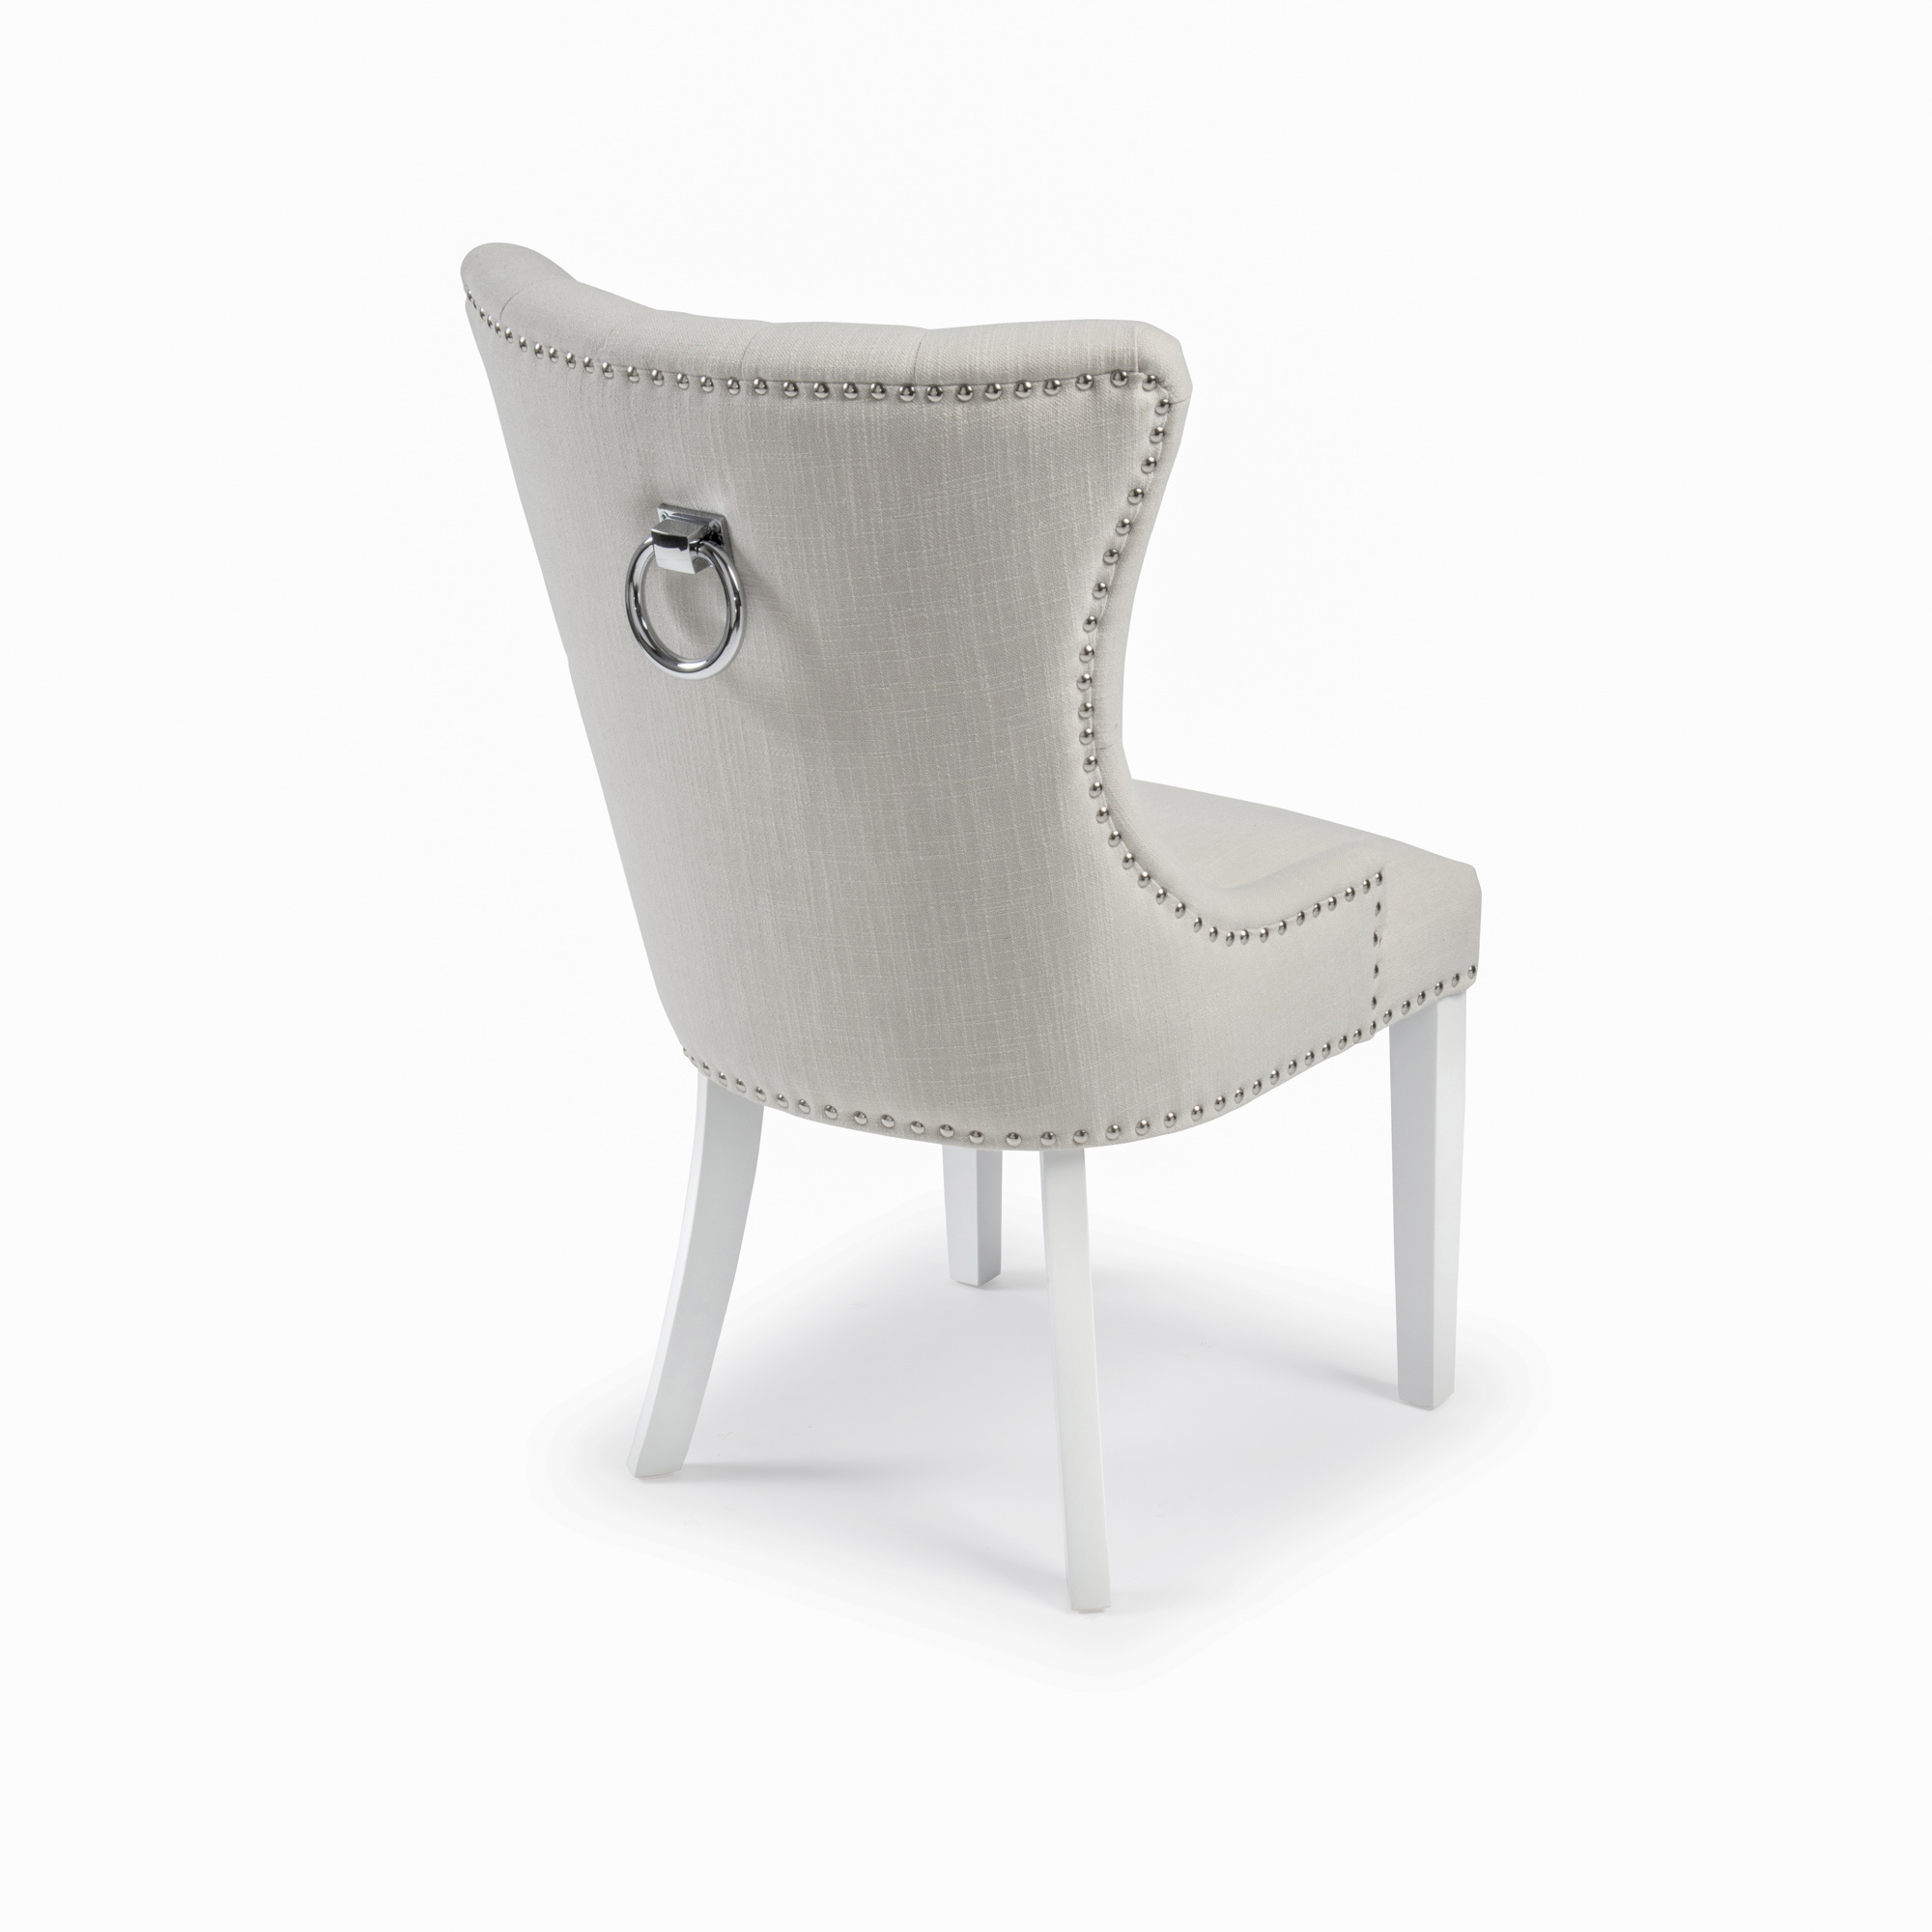 CLEARANCE: Knightsbridge Natural Linen Dining Chair with Stainless Steel Hoop Handle